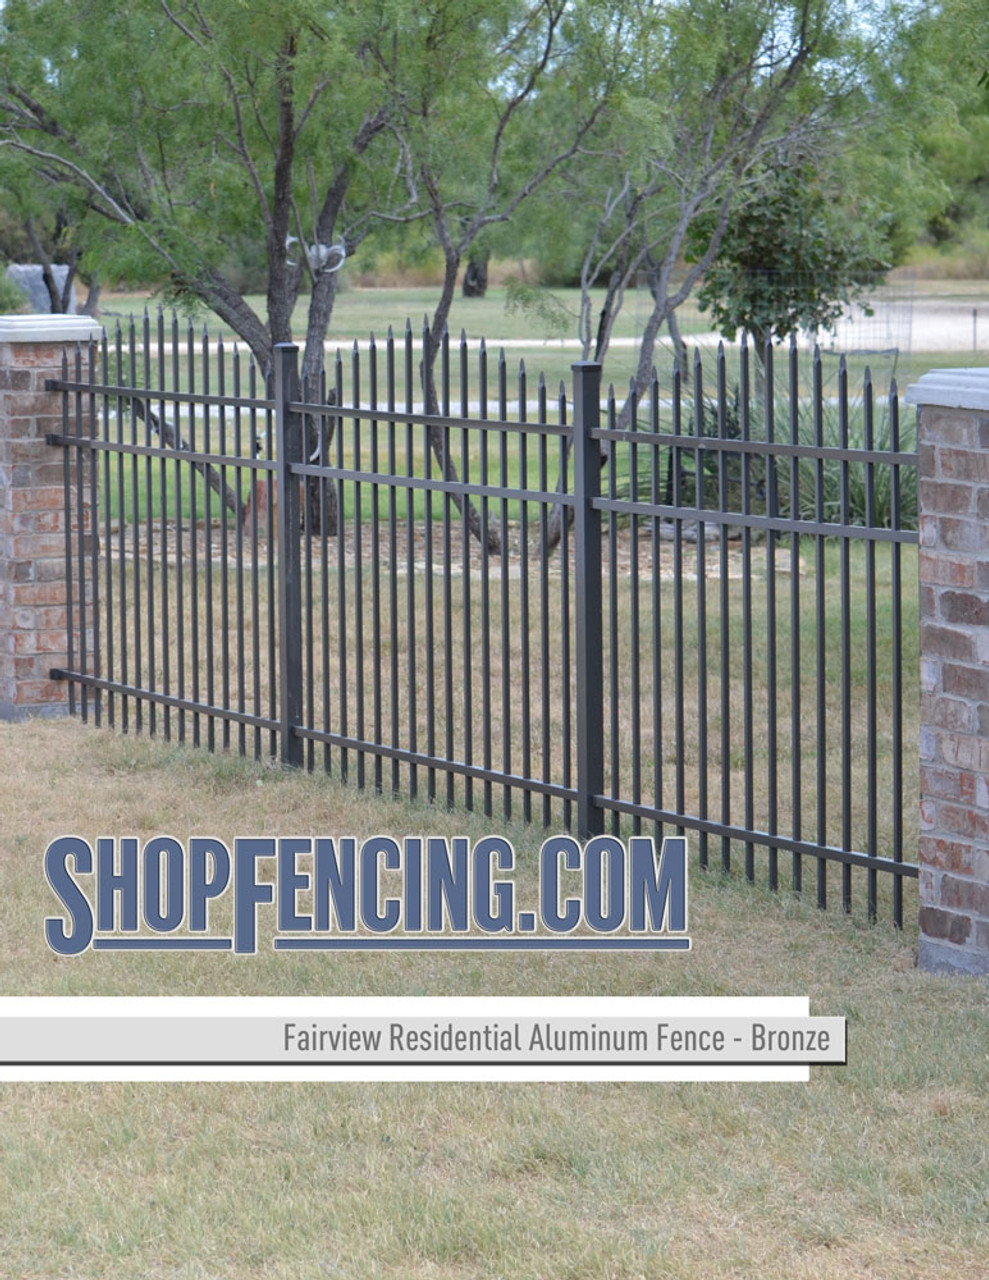 Bronze Residential Fairview Aluminum Fencing From ShopFencing.com